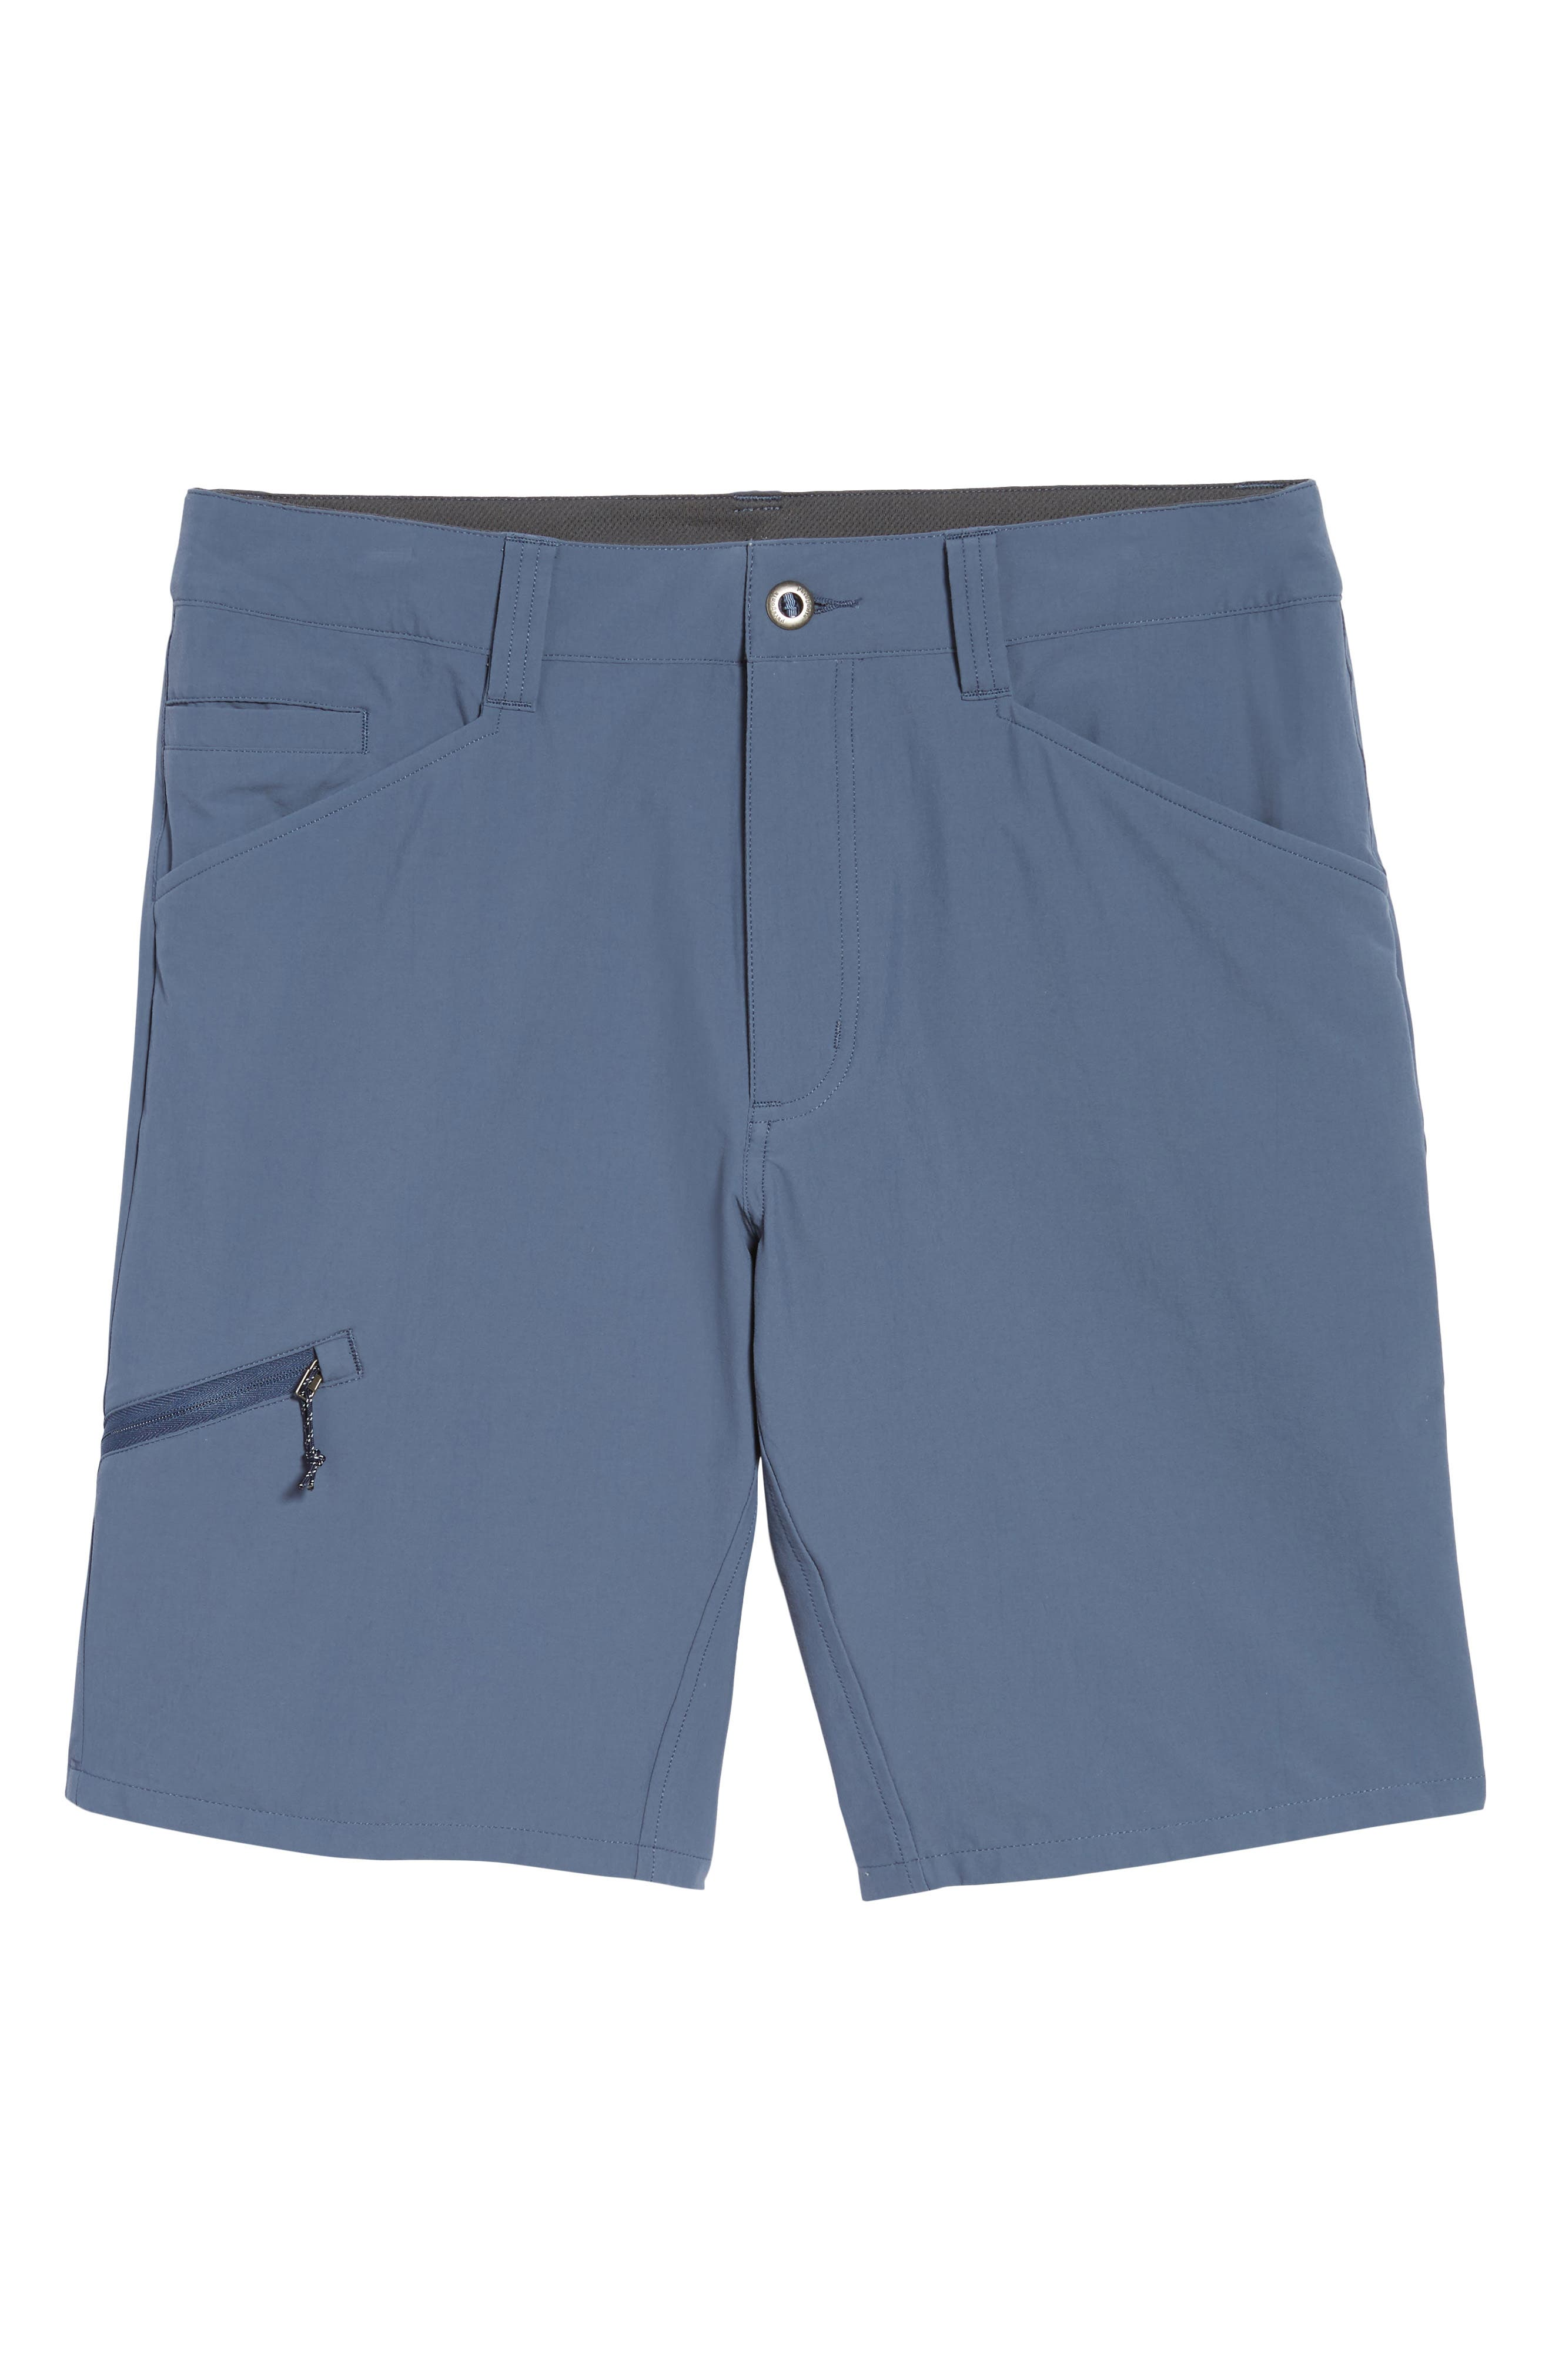 Quandary Shorts,                             Alternate thumbnail 6, color,                             Dolomite Blue